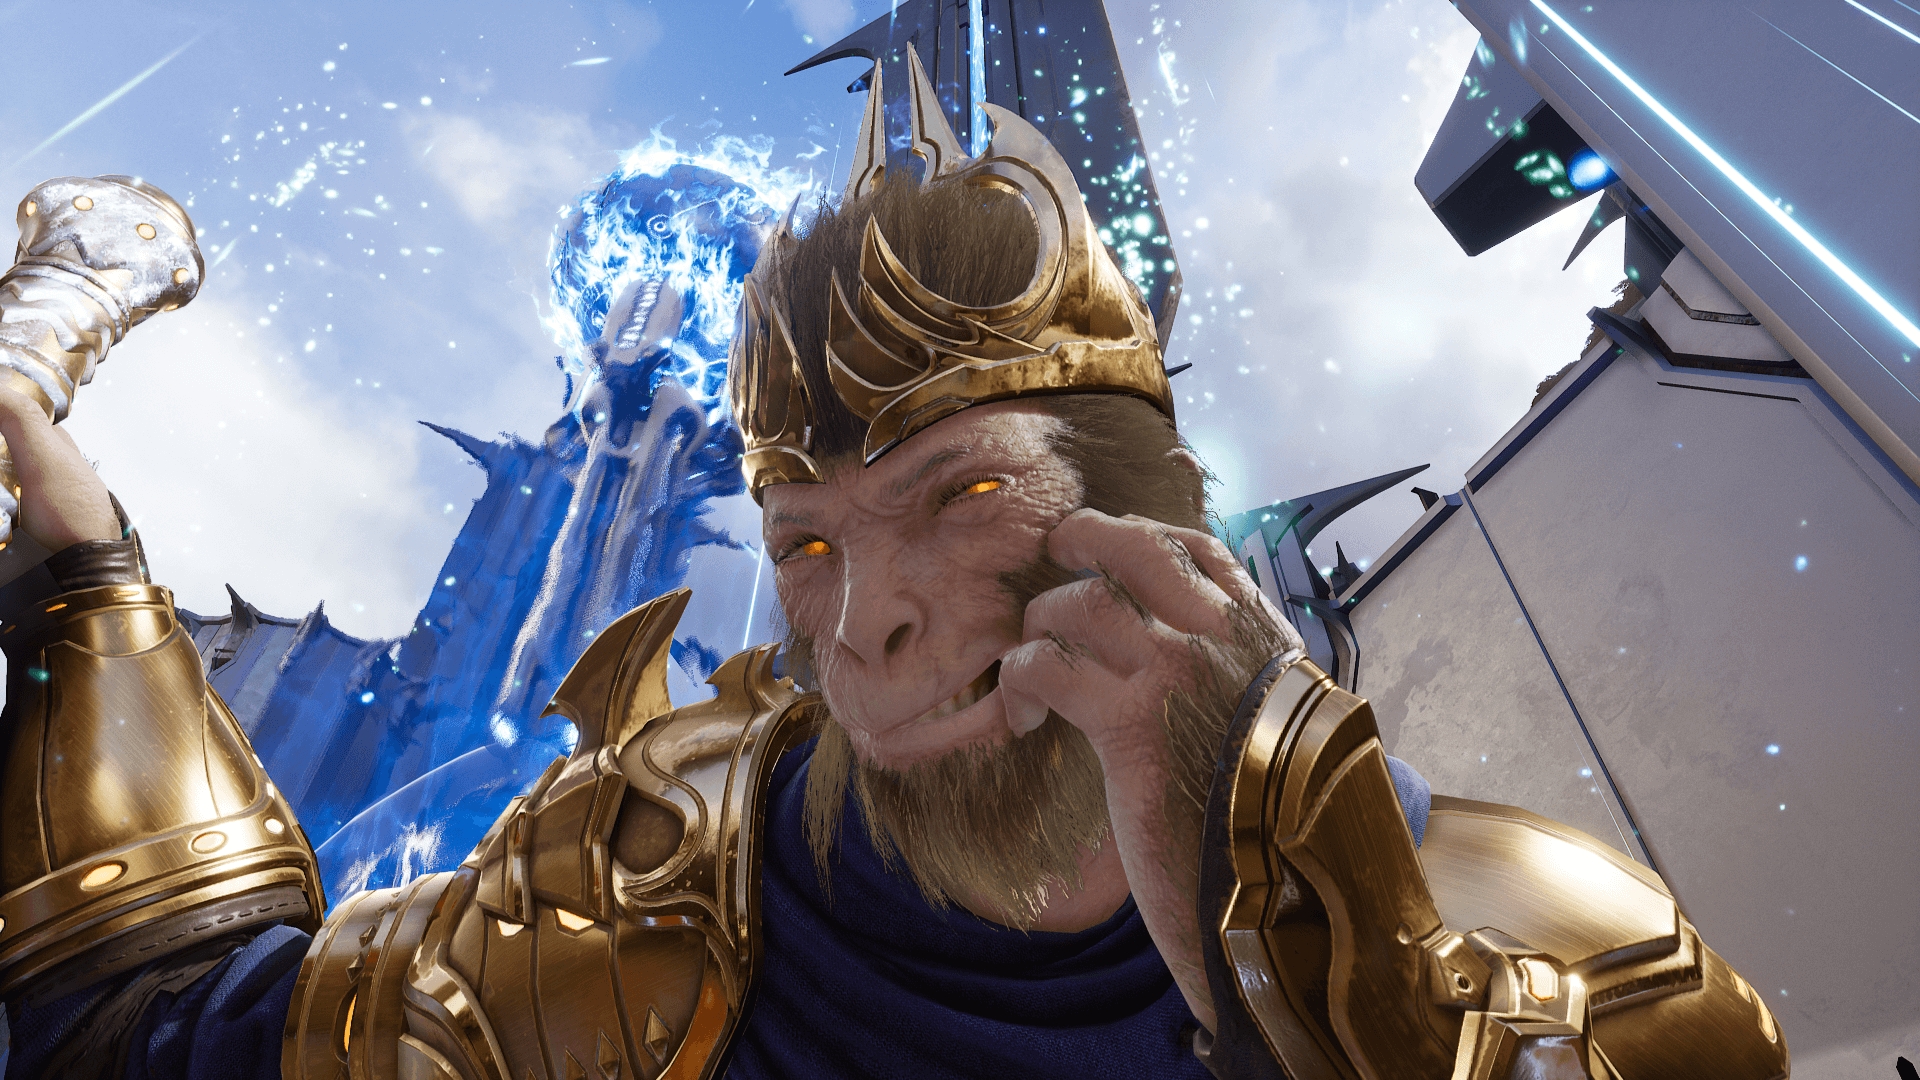 1920x1080 Getting up close with Royal Wukong screenshots! - Album on Imgur